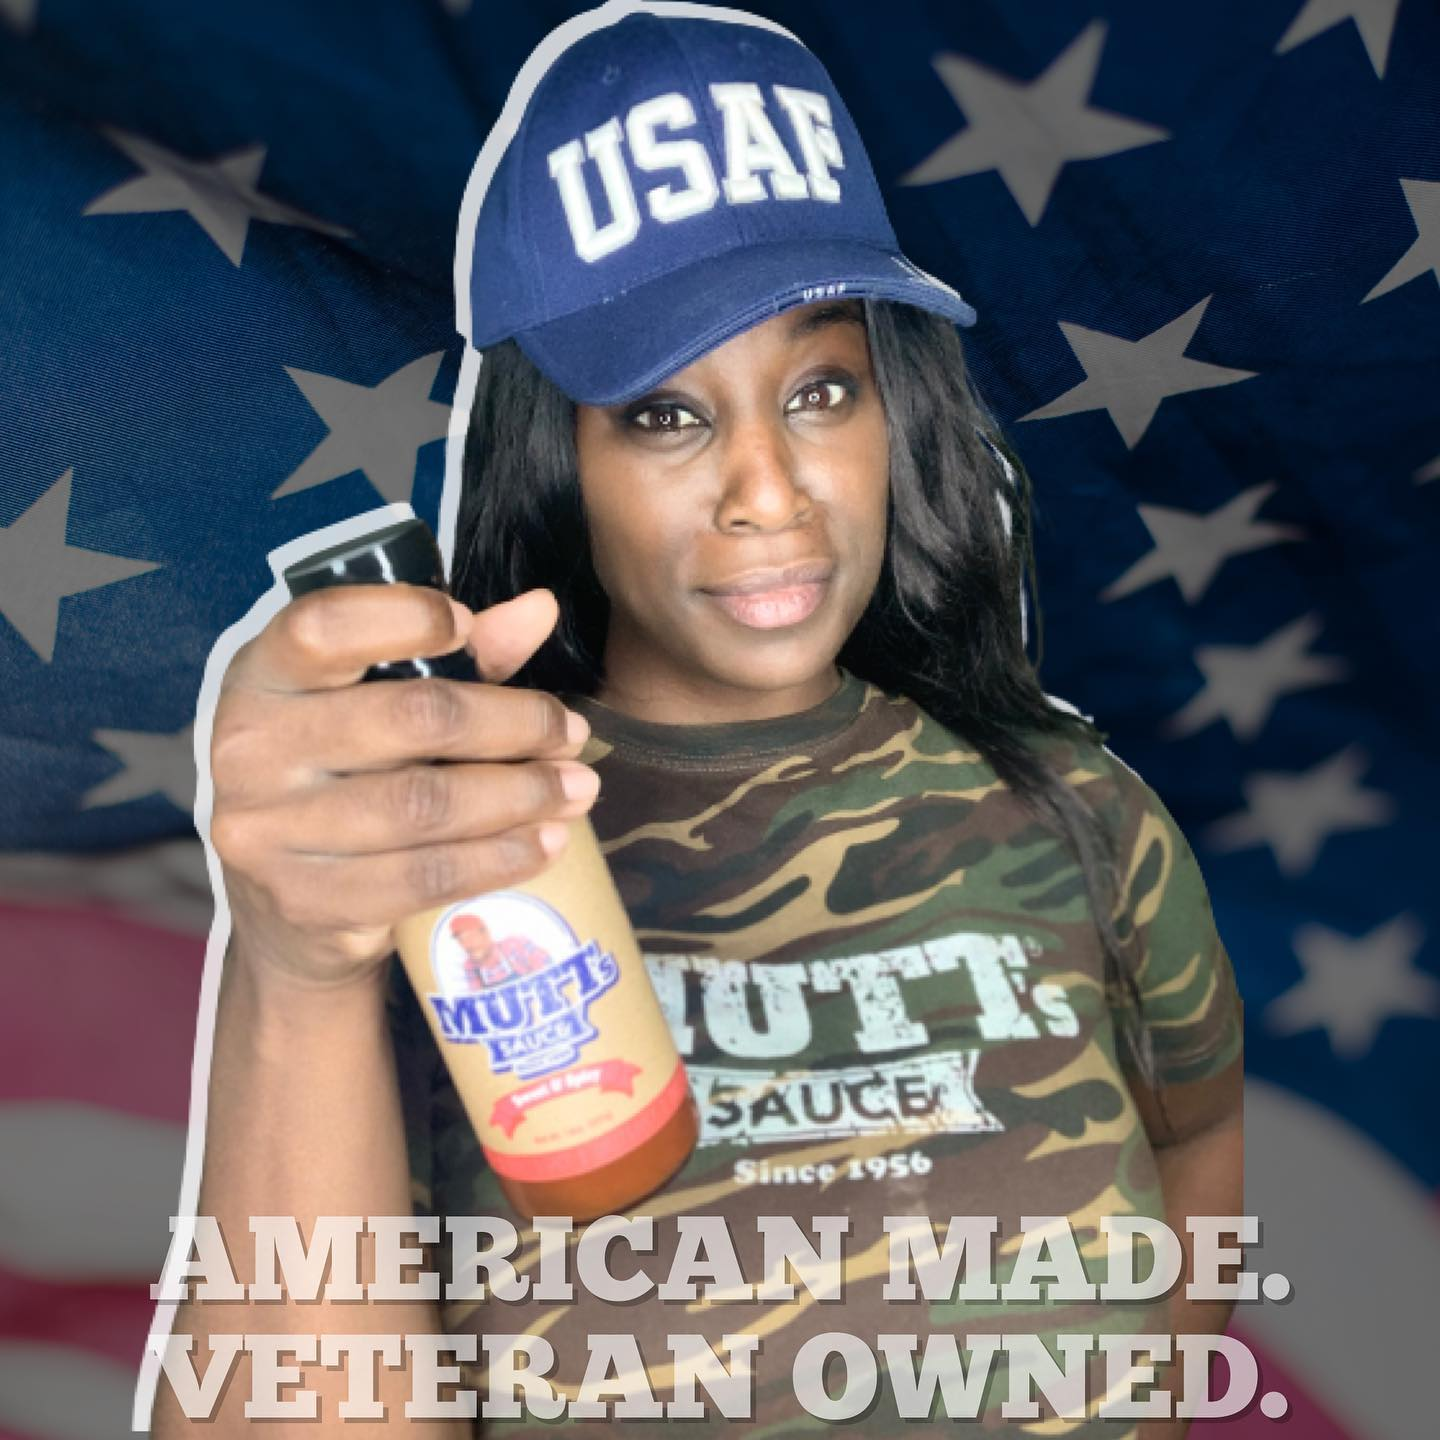 Charlynda Scales, co-founder and CEO of Mutt's Sauce